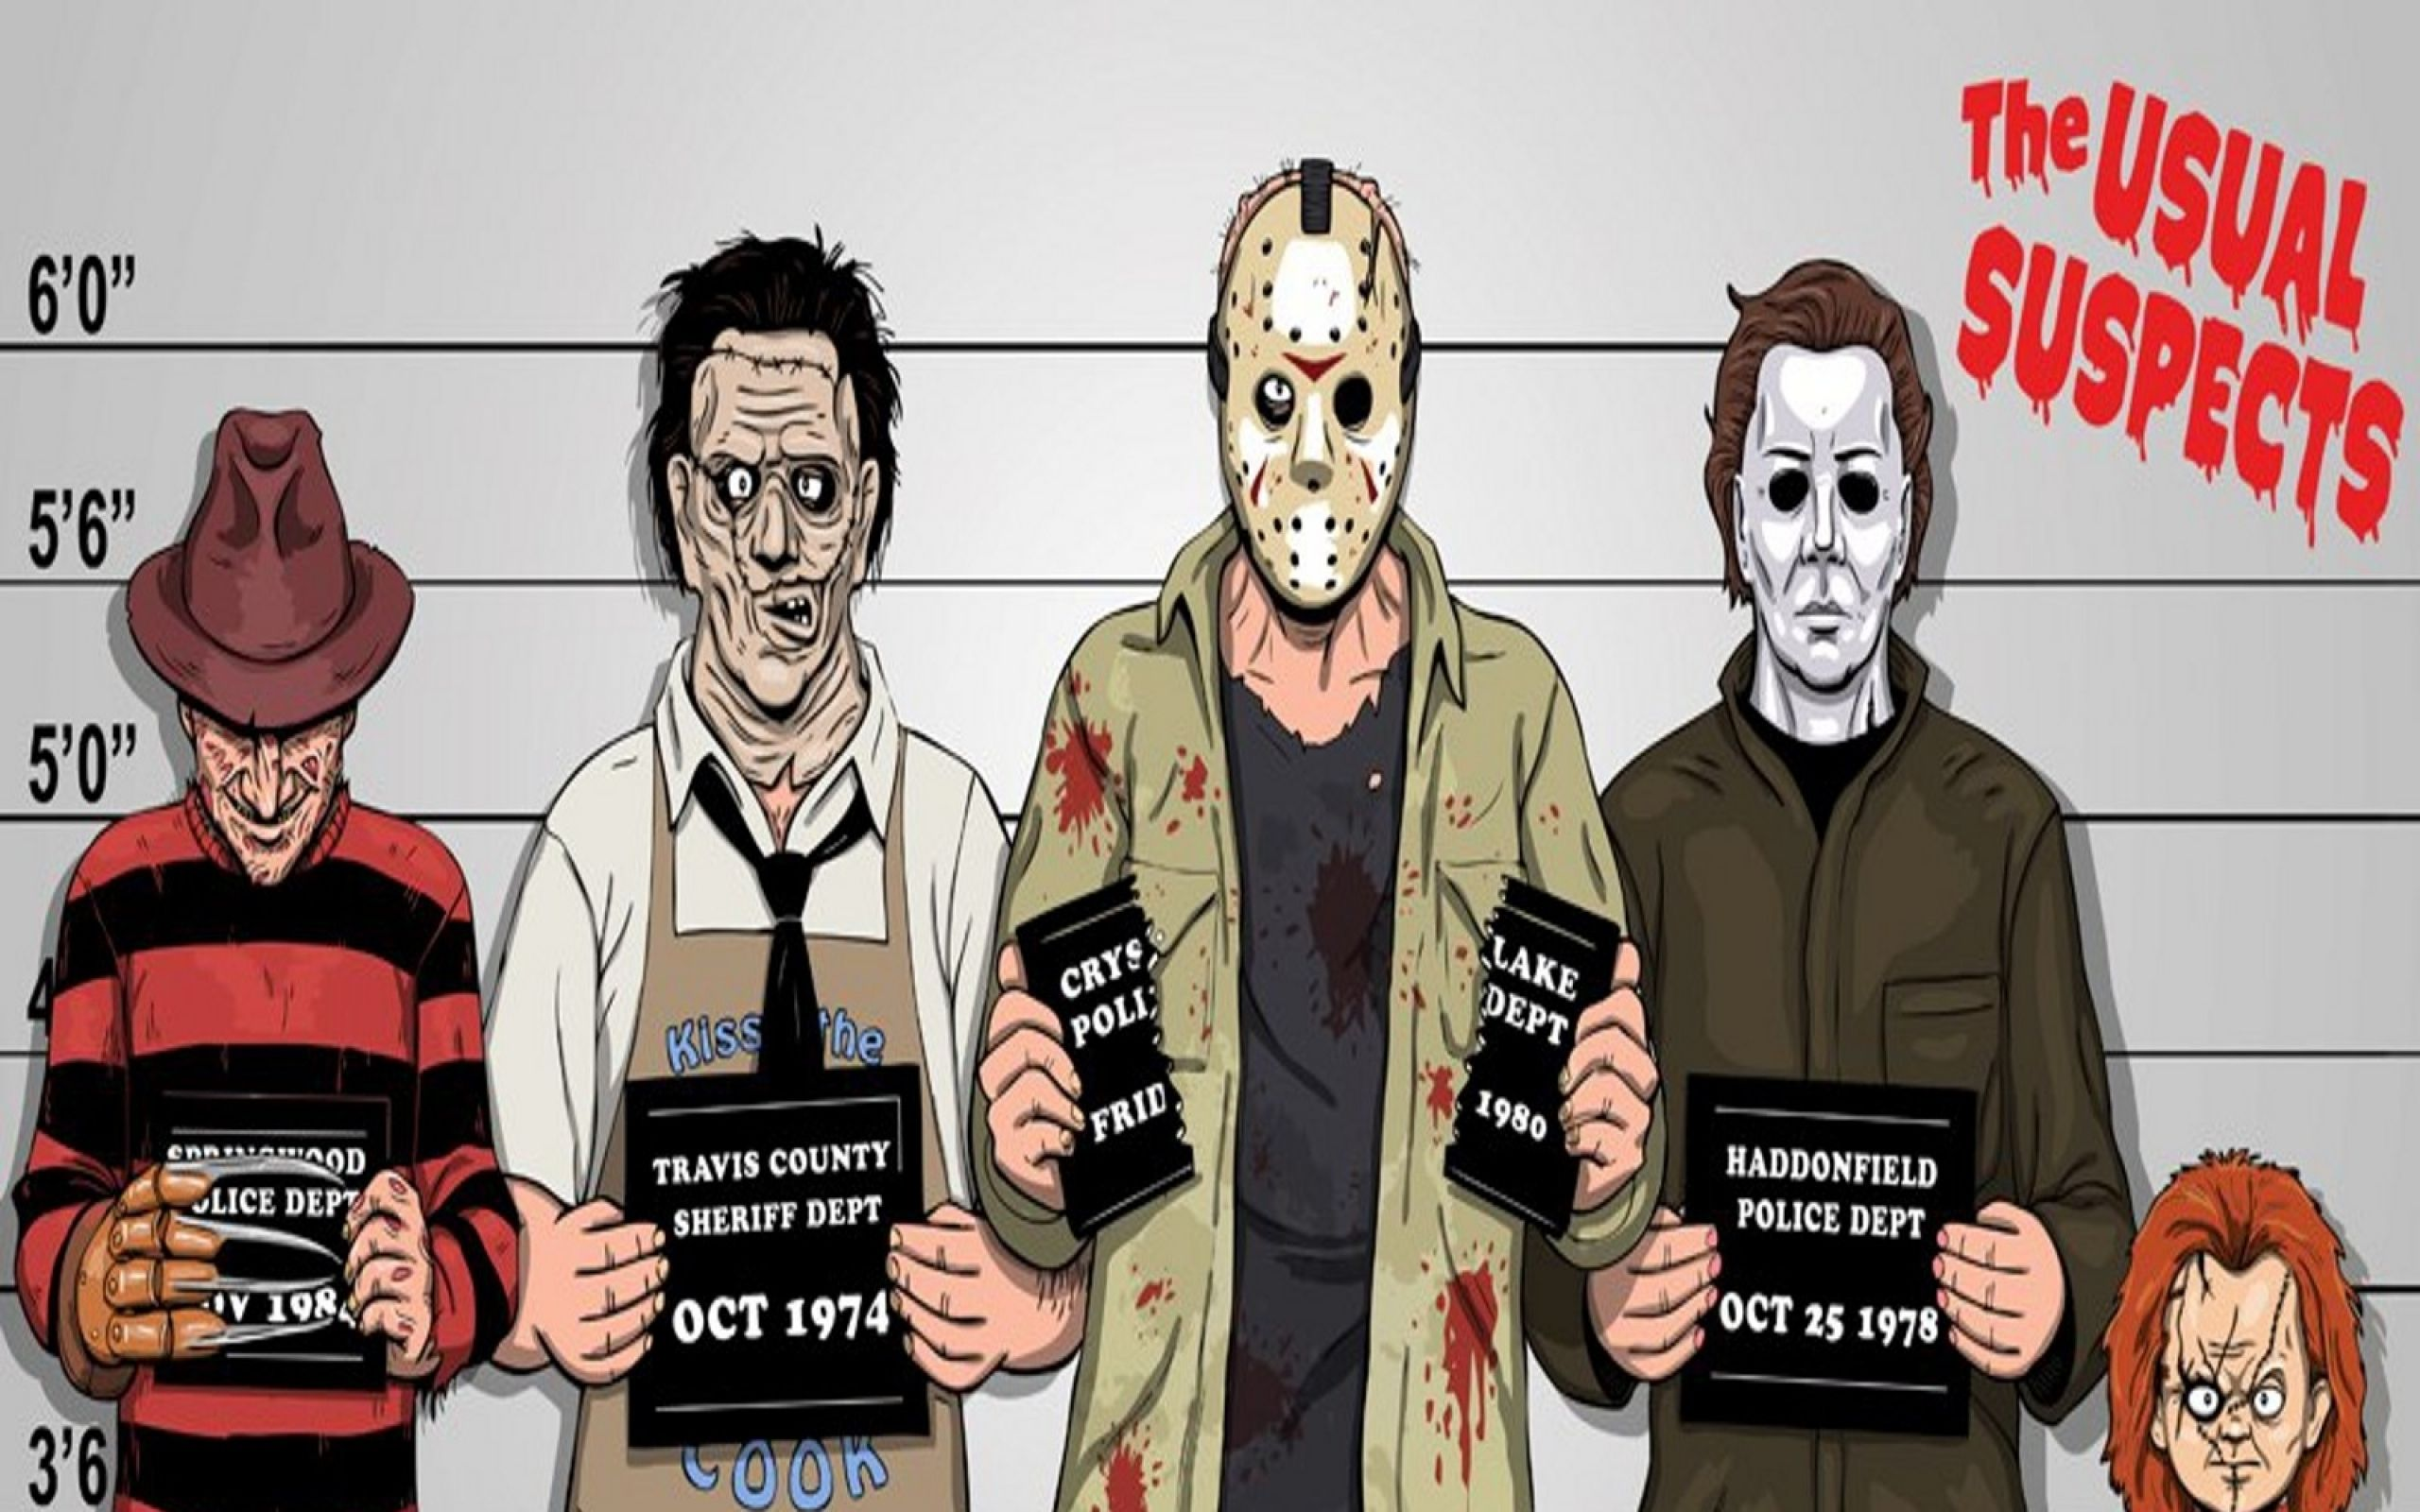 comics funny freddy krueger jason voorhees michael myers the usual